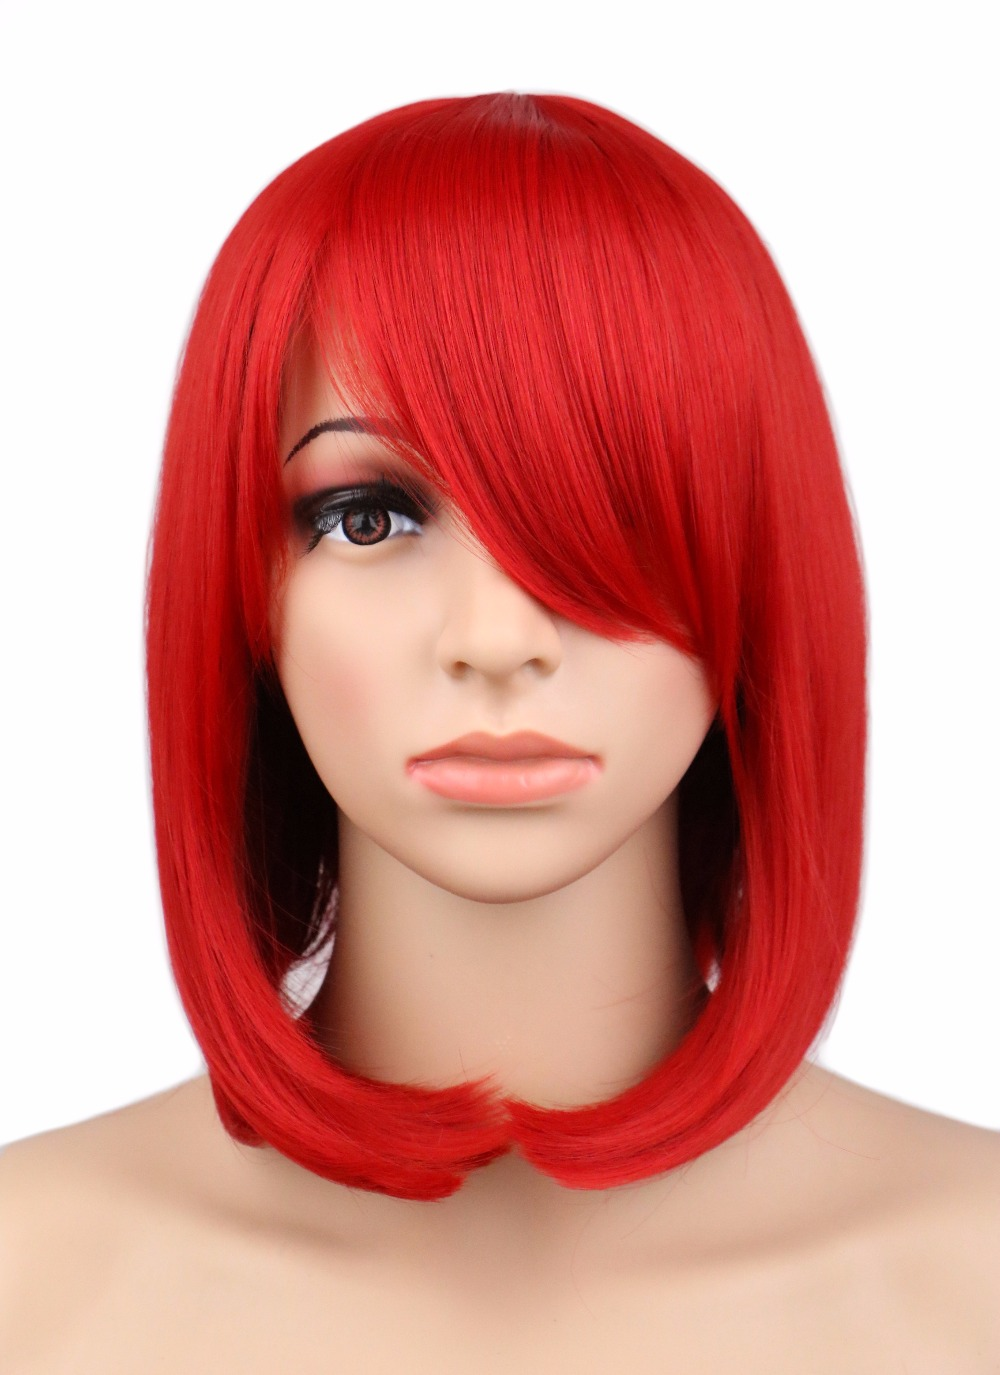 QQXCAIW Short Bob Straight Cosplay Wig Party Costume Red 40 Cm Synthetic Hair Wigs